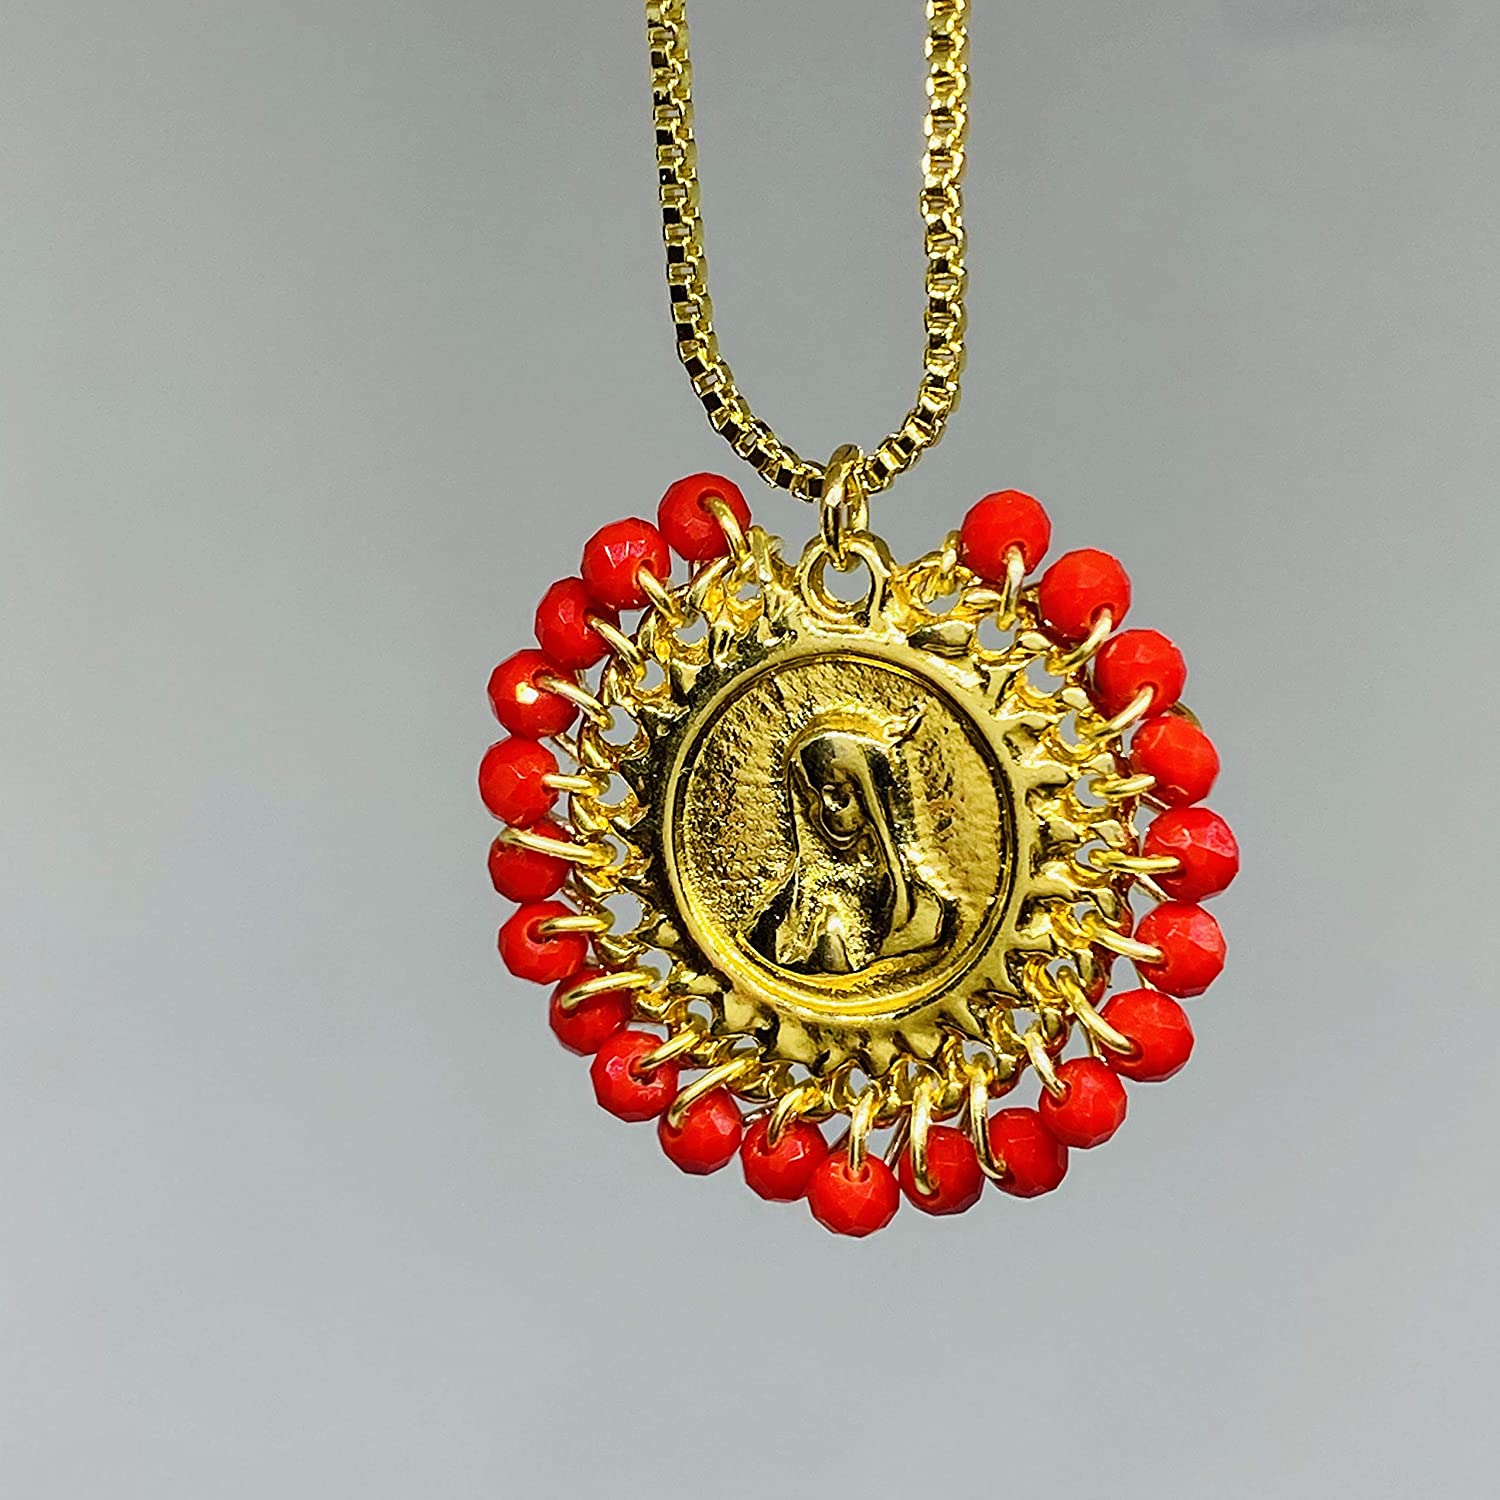 Religious Silver Tone Curb Chain Red Faceted Glass Beads Handmade Virgen De Guadalupe Necklace Mother/'s Day Gift Mexico/'s Patron Saint